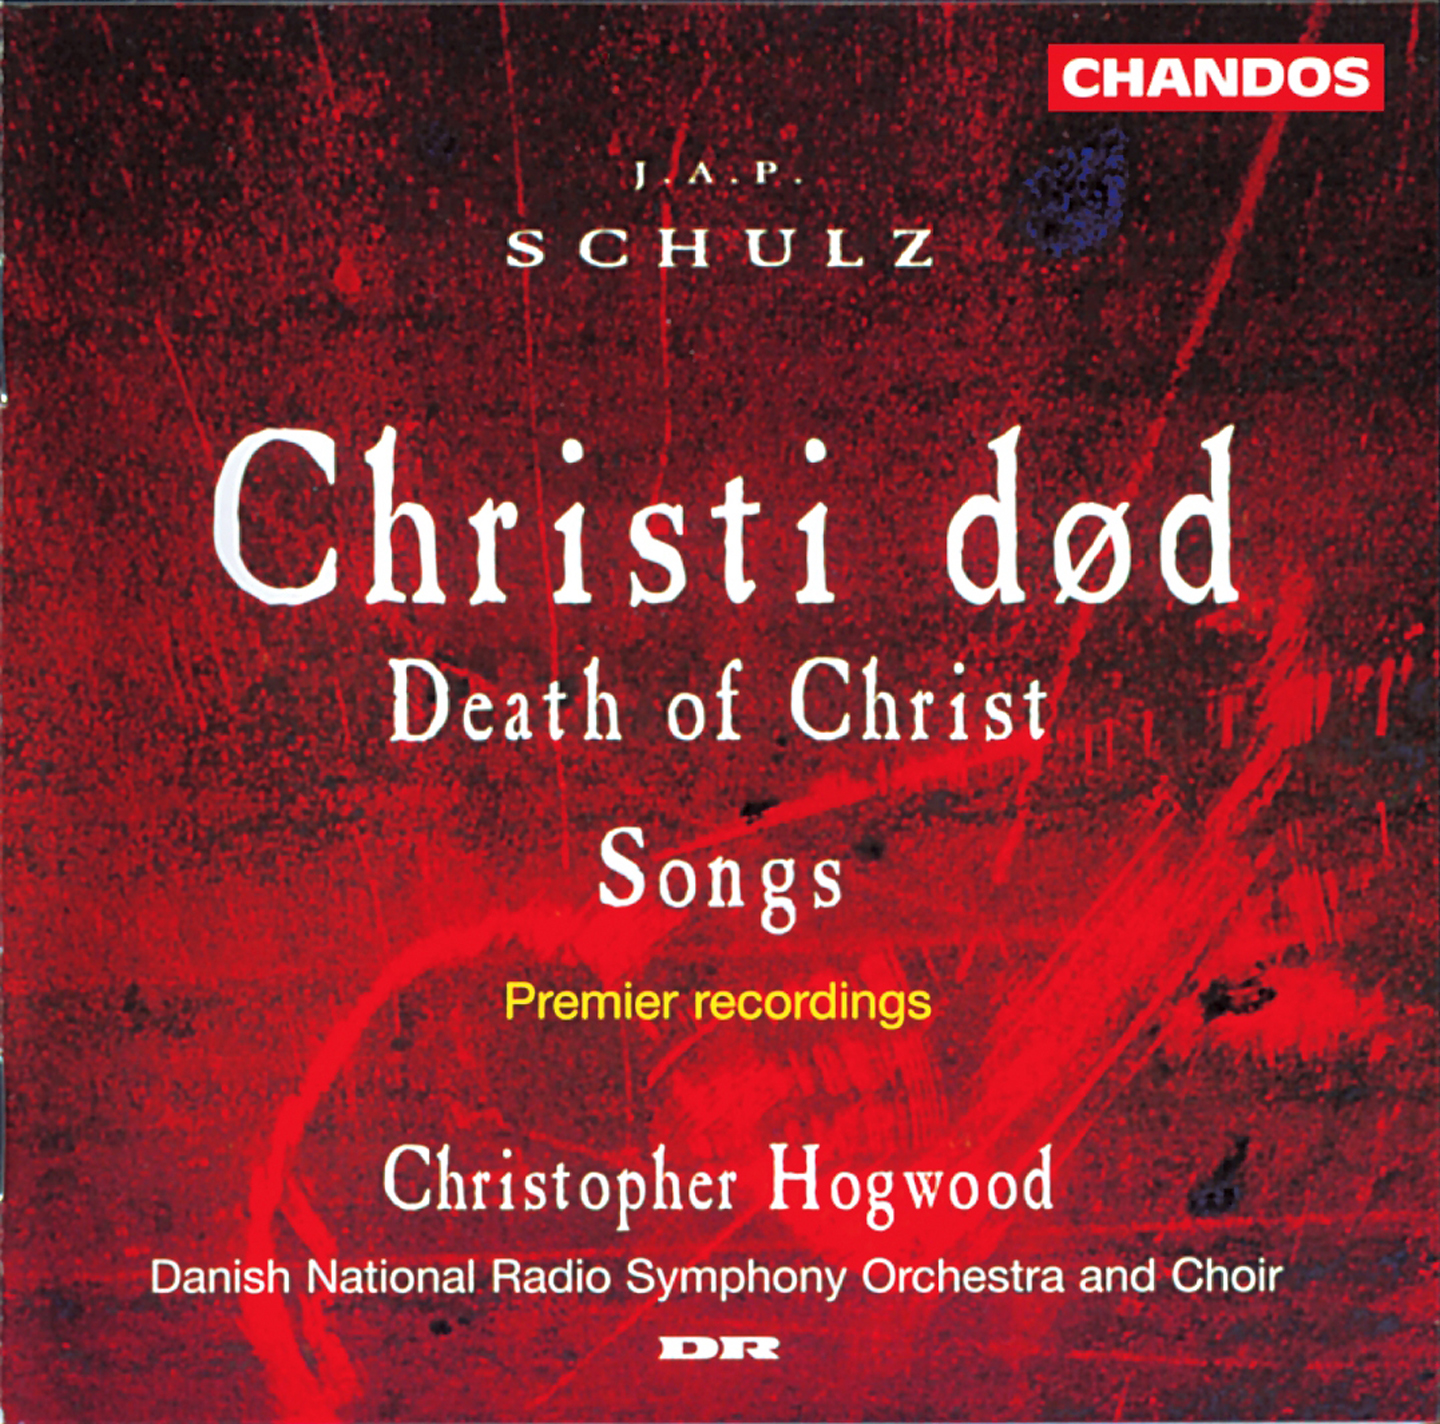 Abendlied (Evening Song), Abendlied